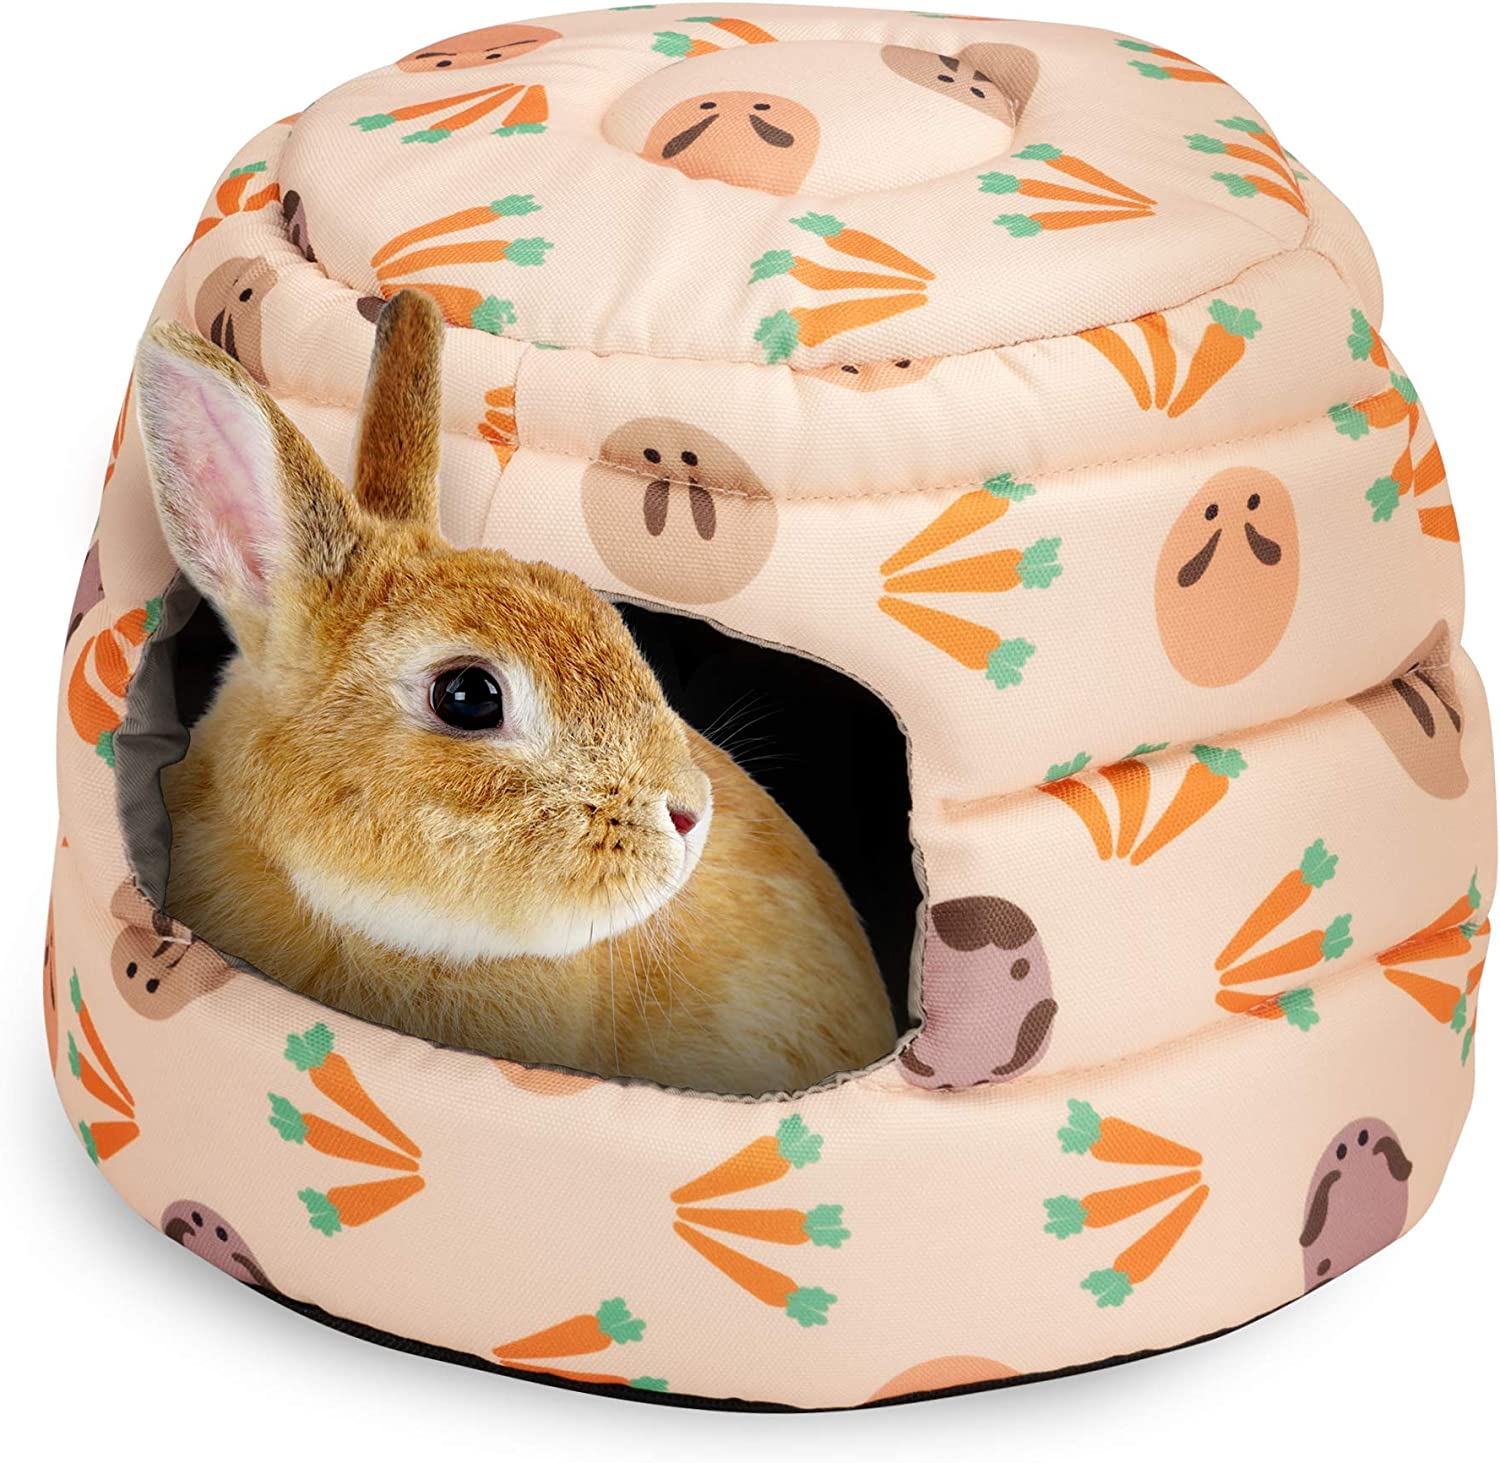 Niteangel Guinea Pig Bed Big Hide-Out for Rabbit Ferret Chinchilla Bunny and Other Small Animals